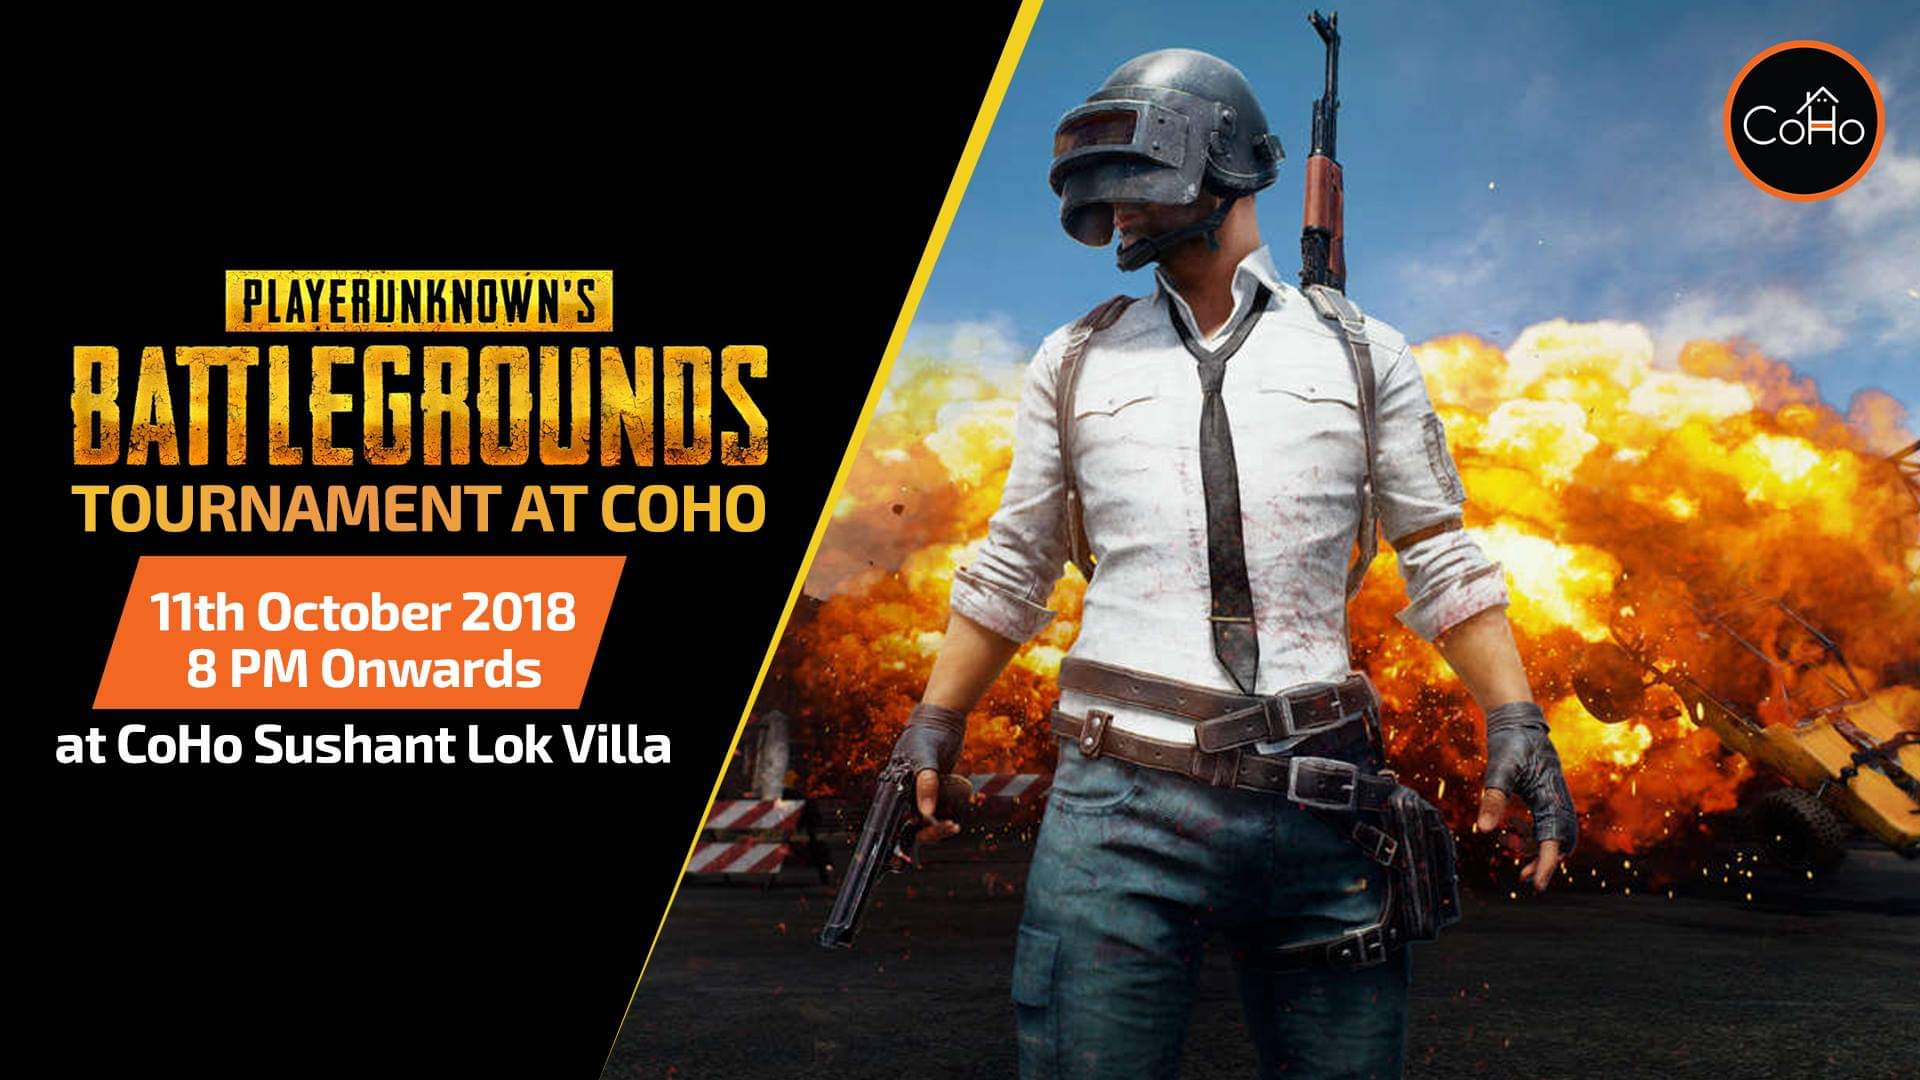 PUBG tournament at CoHo